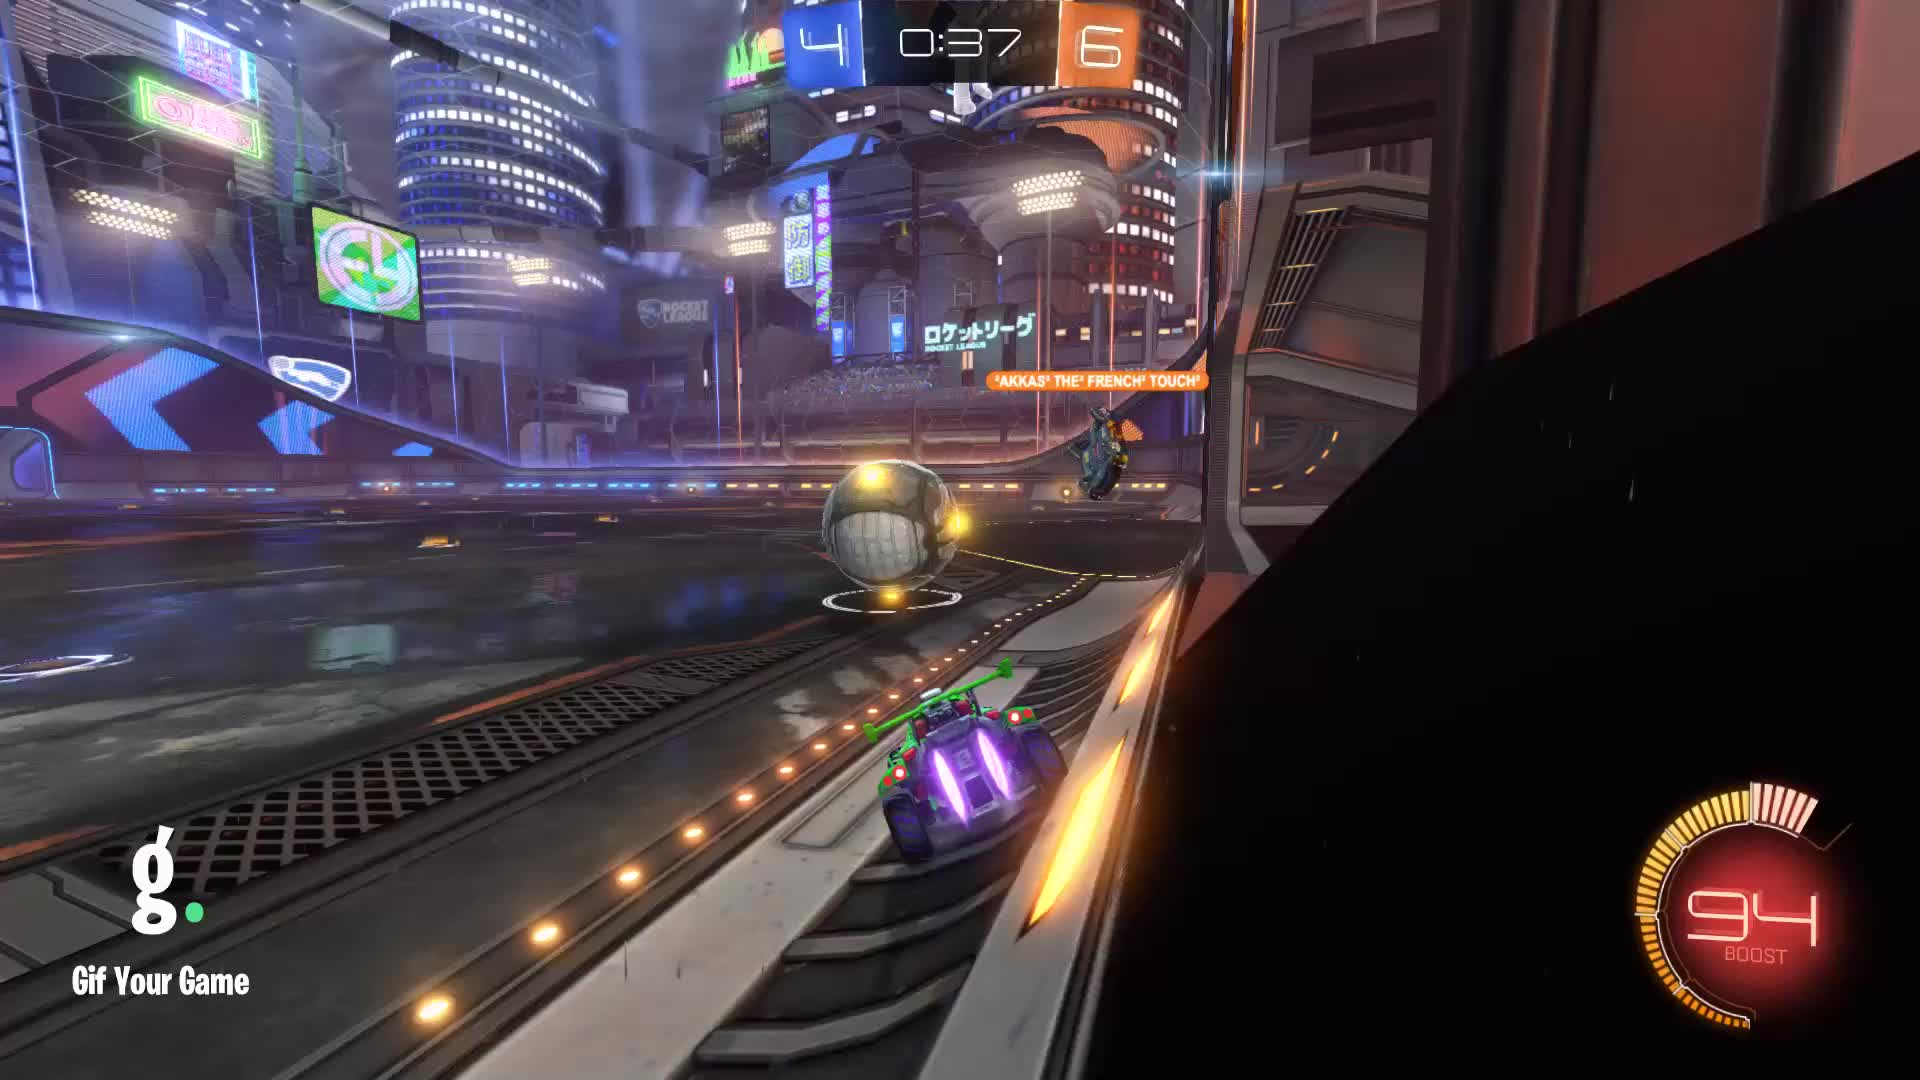 Gif Your Game, GifYourGame, Goal, Rocket League, RocketLeague, 🎬 Stitched 5 clips 7/18/2019 GIFs